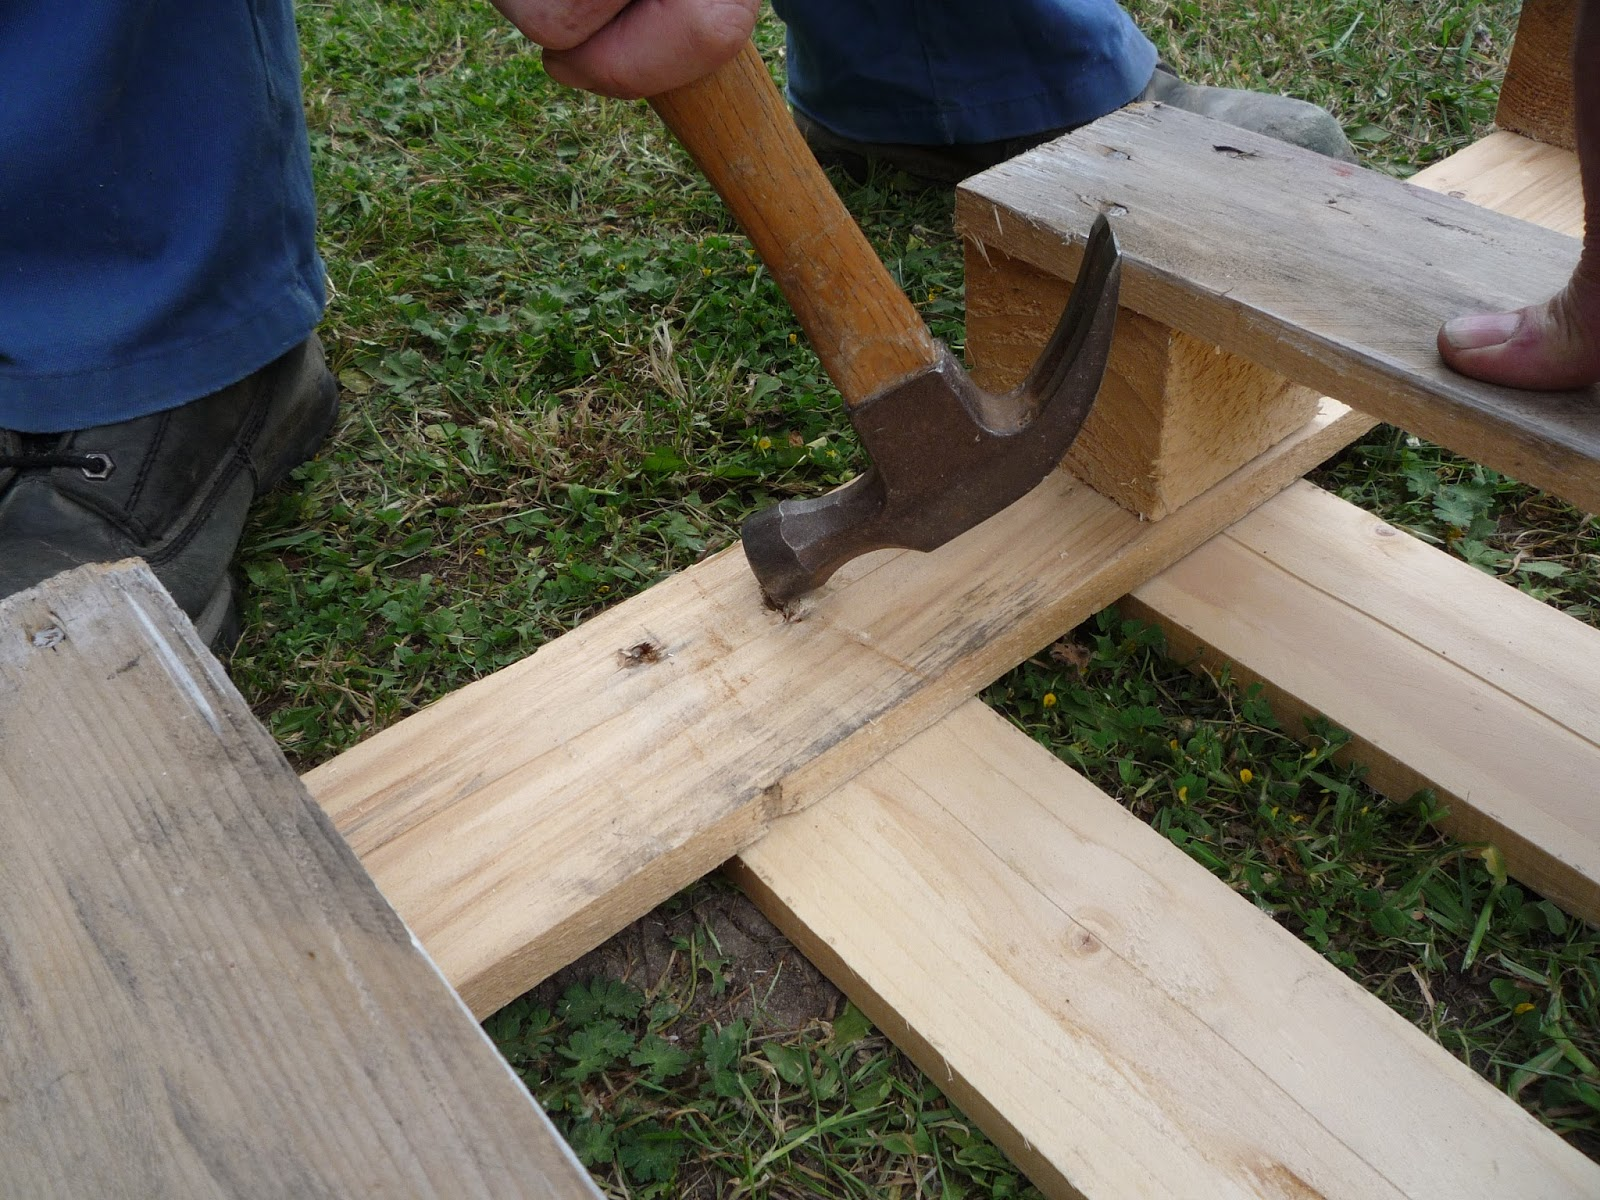 How to take a pallet apart for maximum carpentry wood